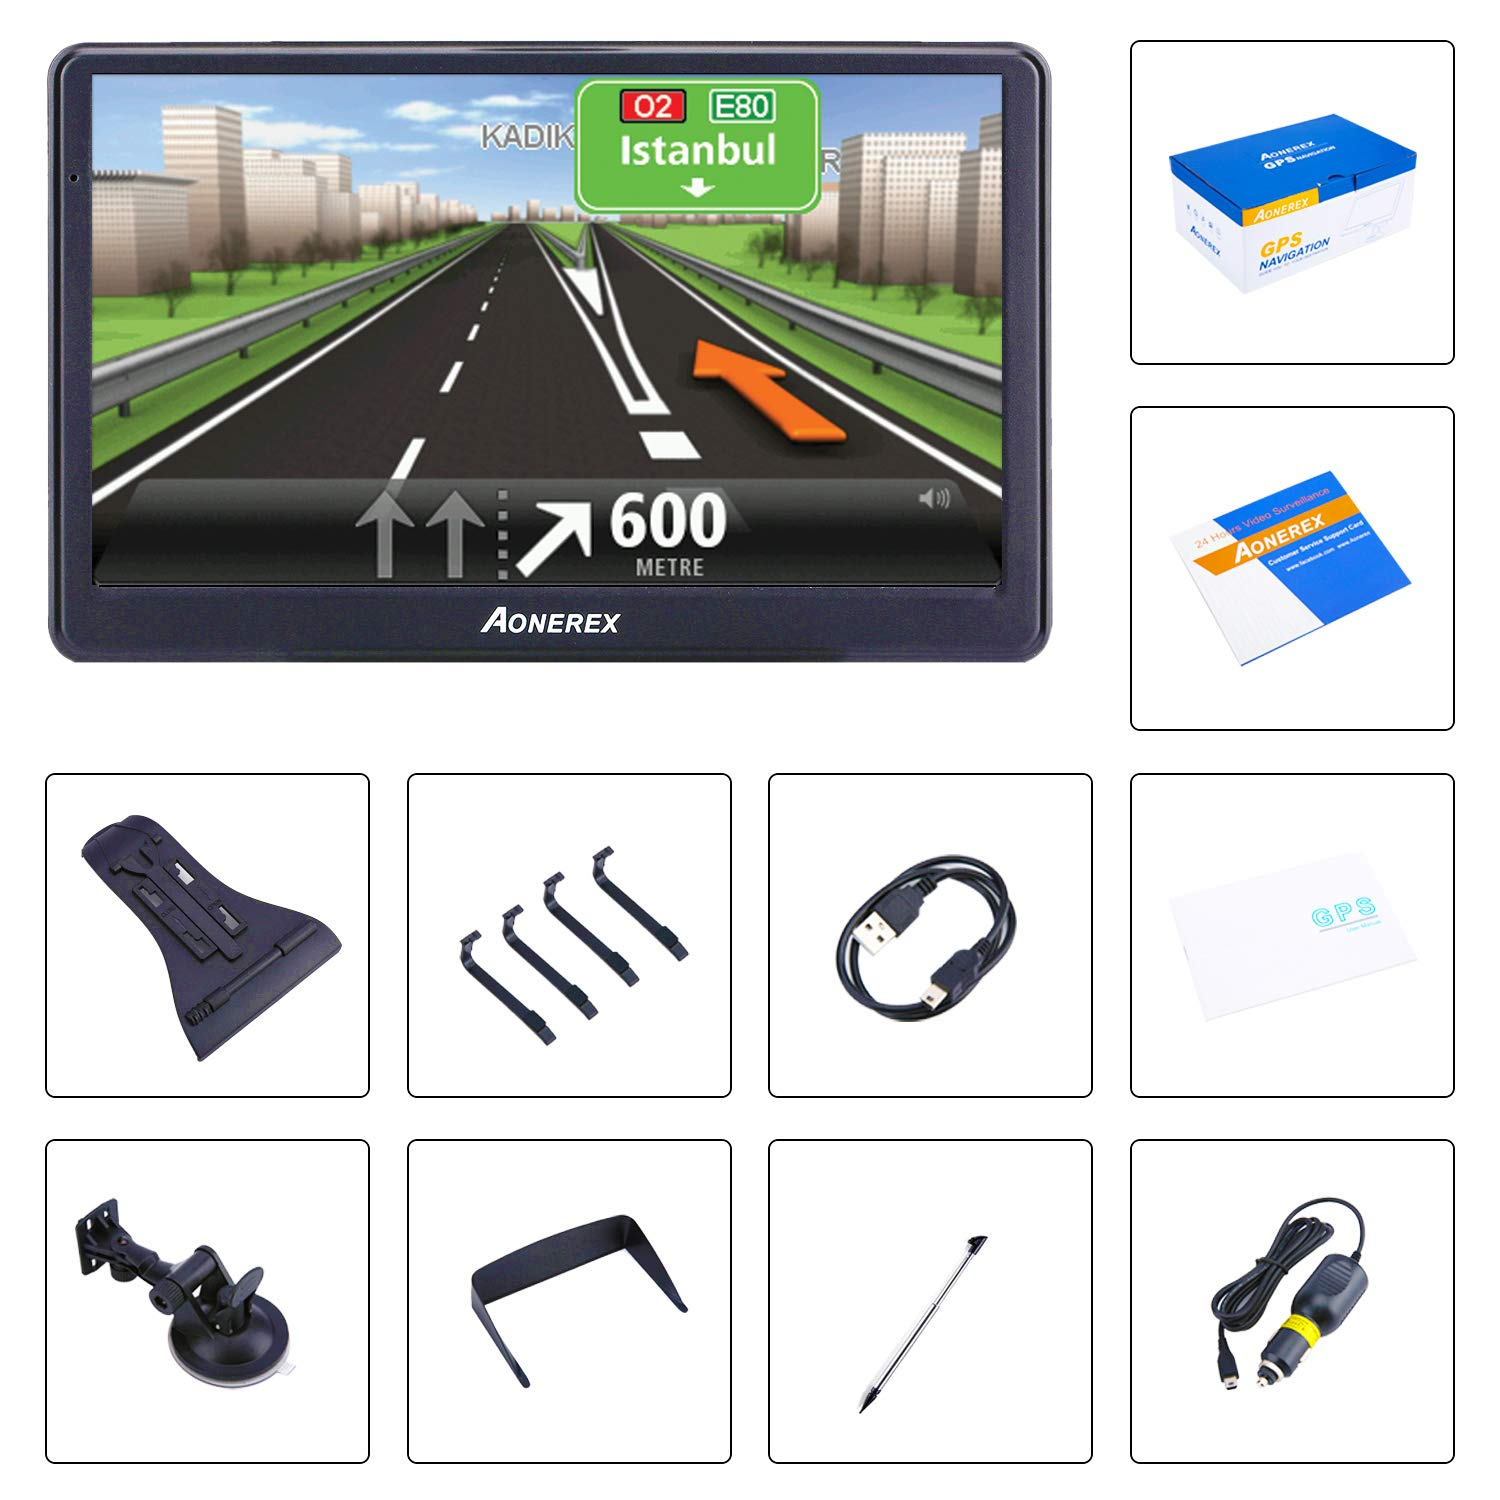 8GB Voice Prompt GPS Navigation System Built-in Lifetime Maps,Advanced Lane Guidance and Spoken Turn-by-Turn Directions car Navigation 7 inch Touch Screen